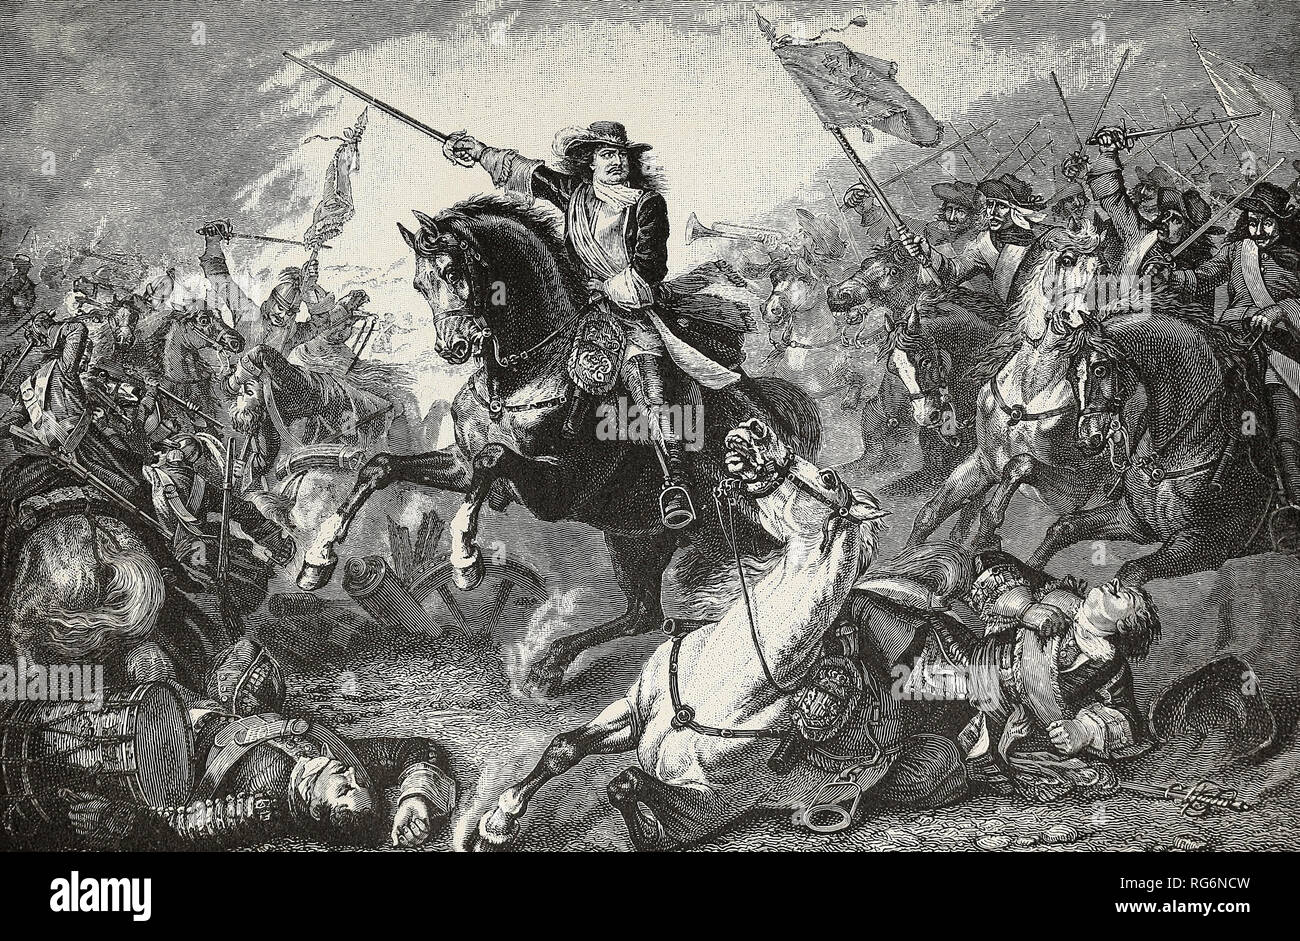 The Great Elector at Fehrbellin - Frederick of Brandenburg saves his domain from the Swedes - Stock Image